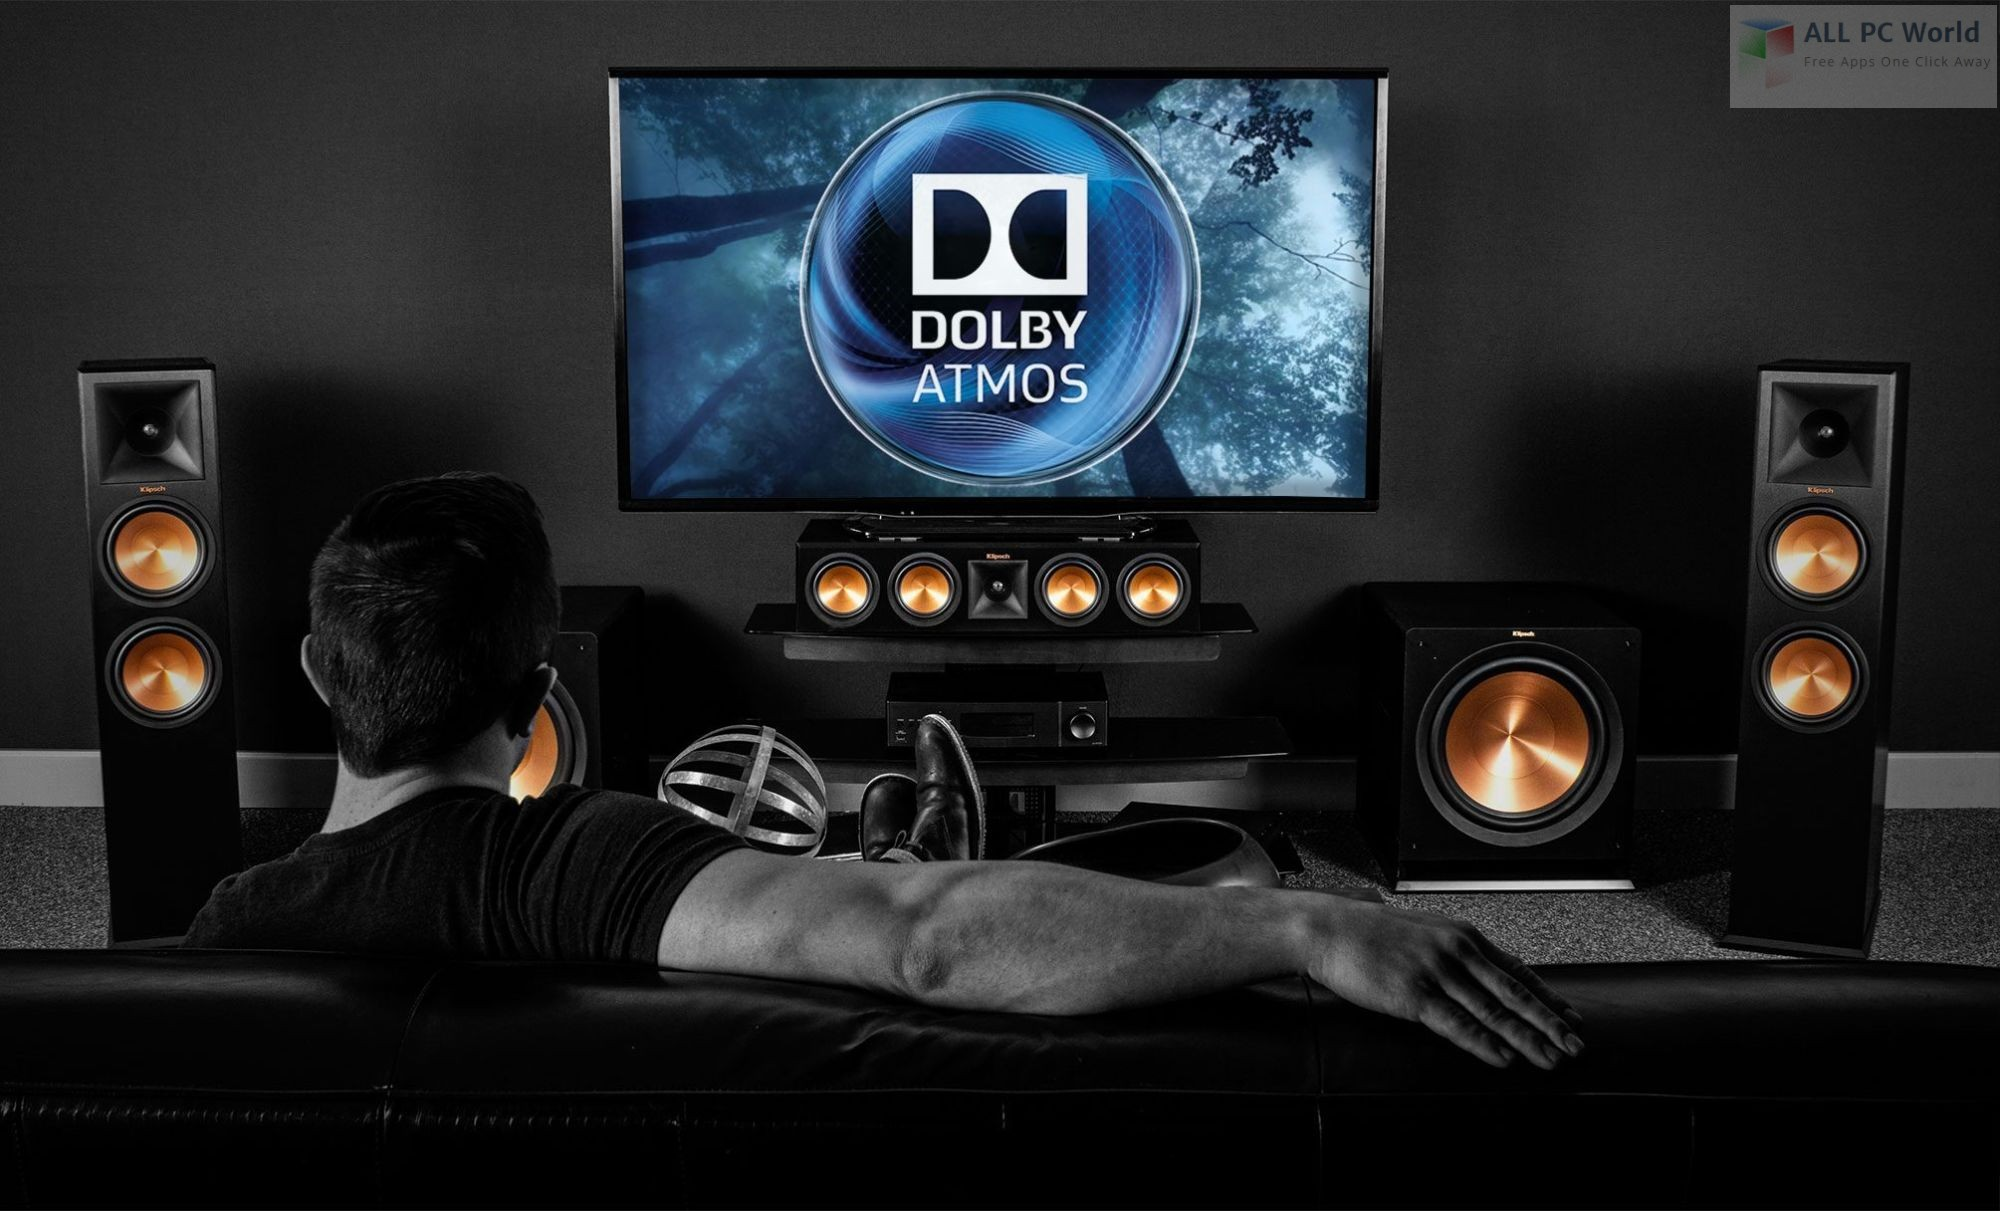 Dolby Atmos Control Panel